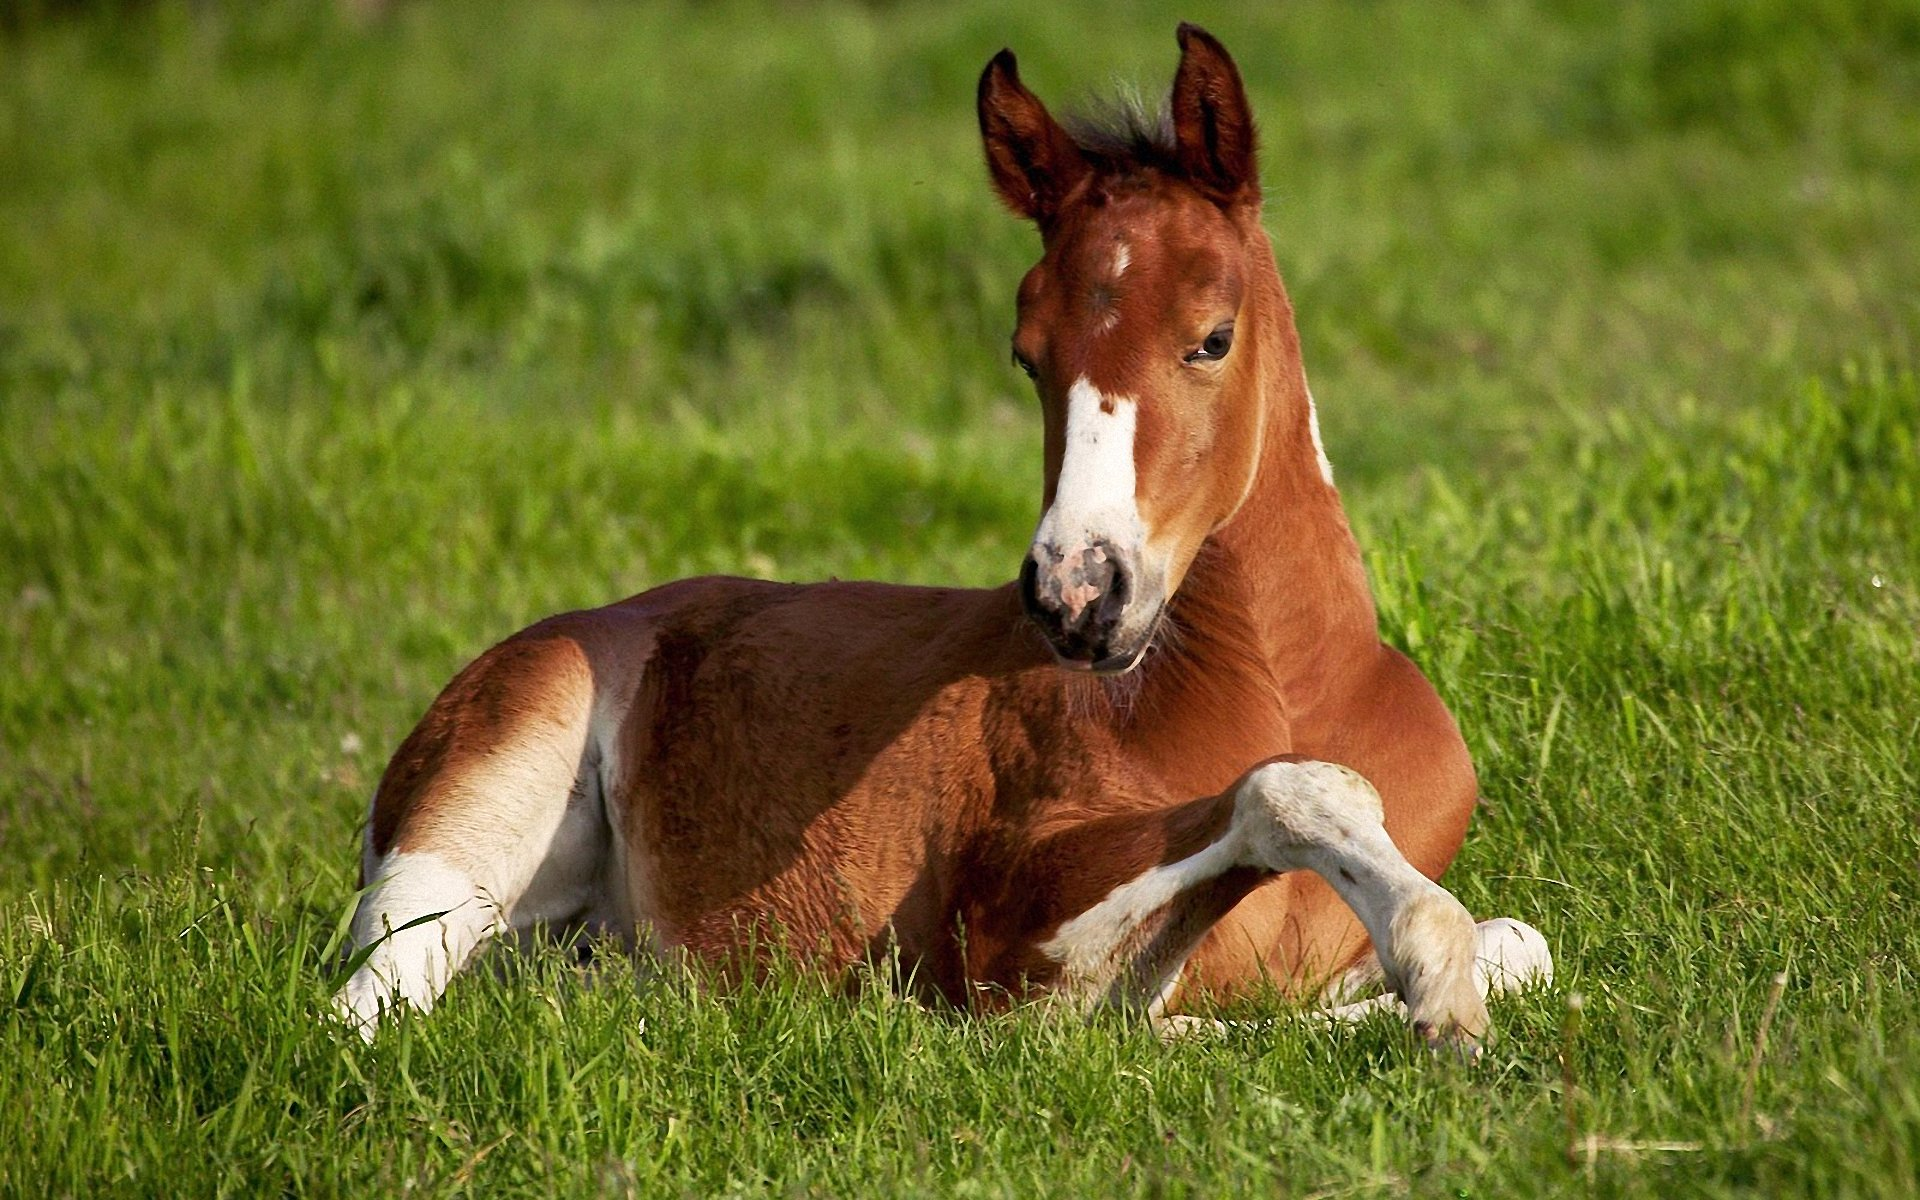 Wide Beautiful Horse Wallpapers Cute Horse Lying Down 1893901 Hd Wallpaper Backgrounds Download